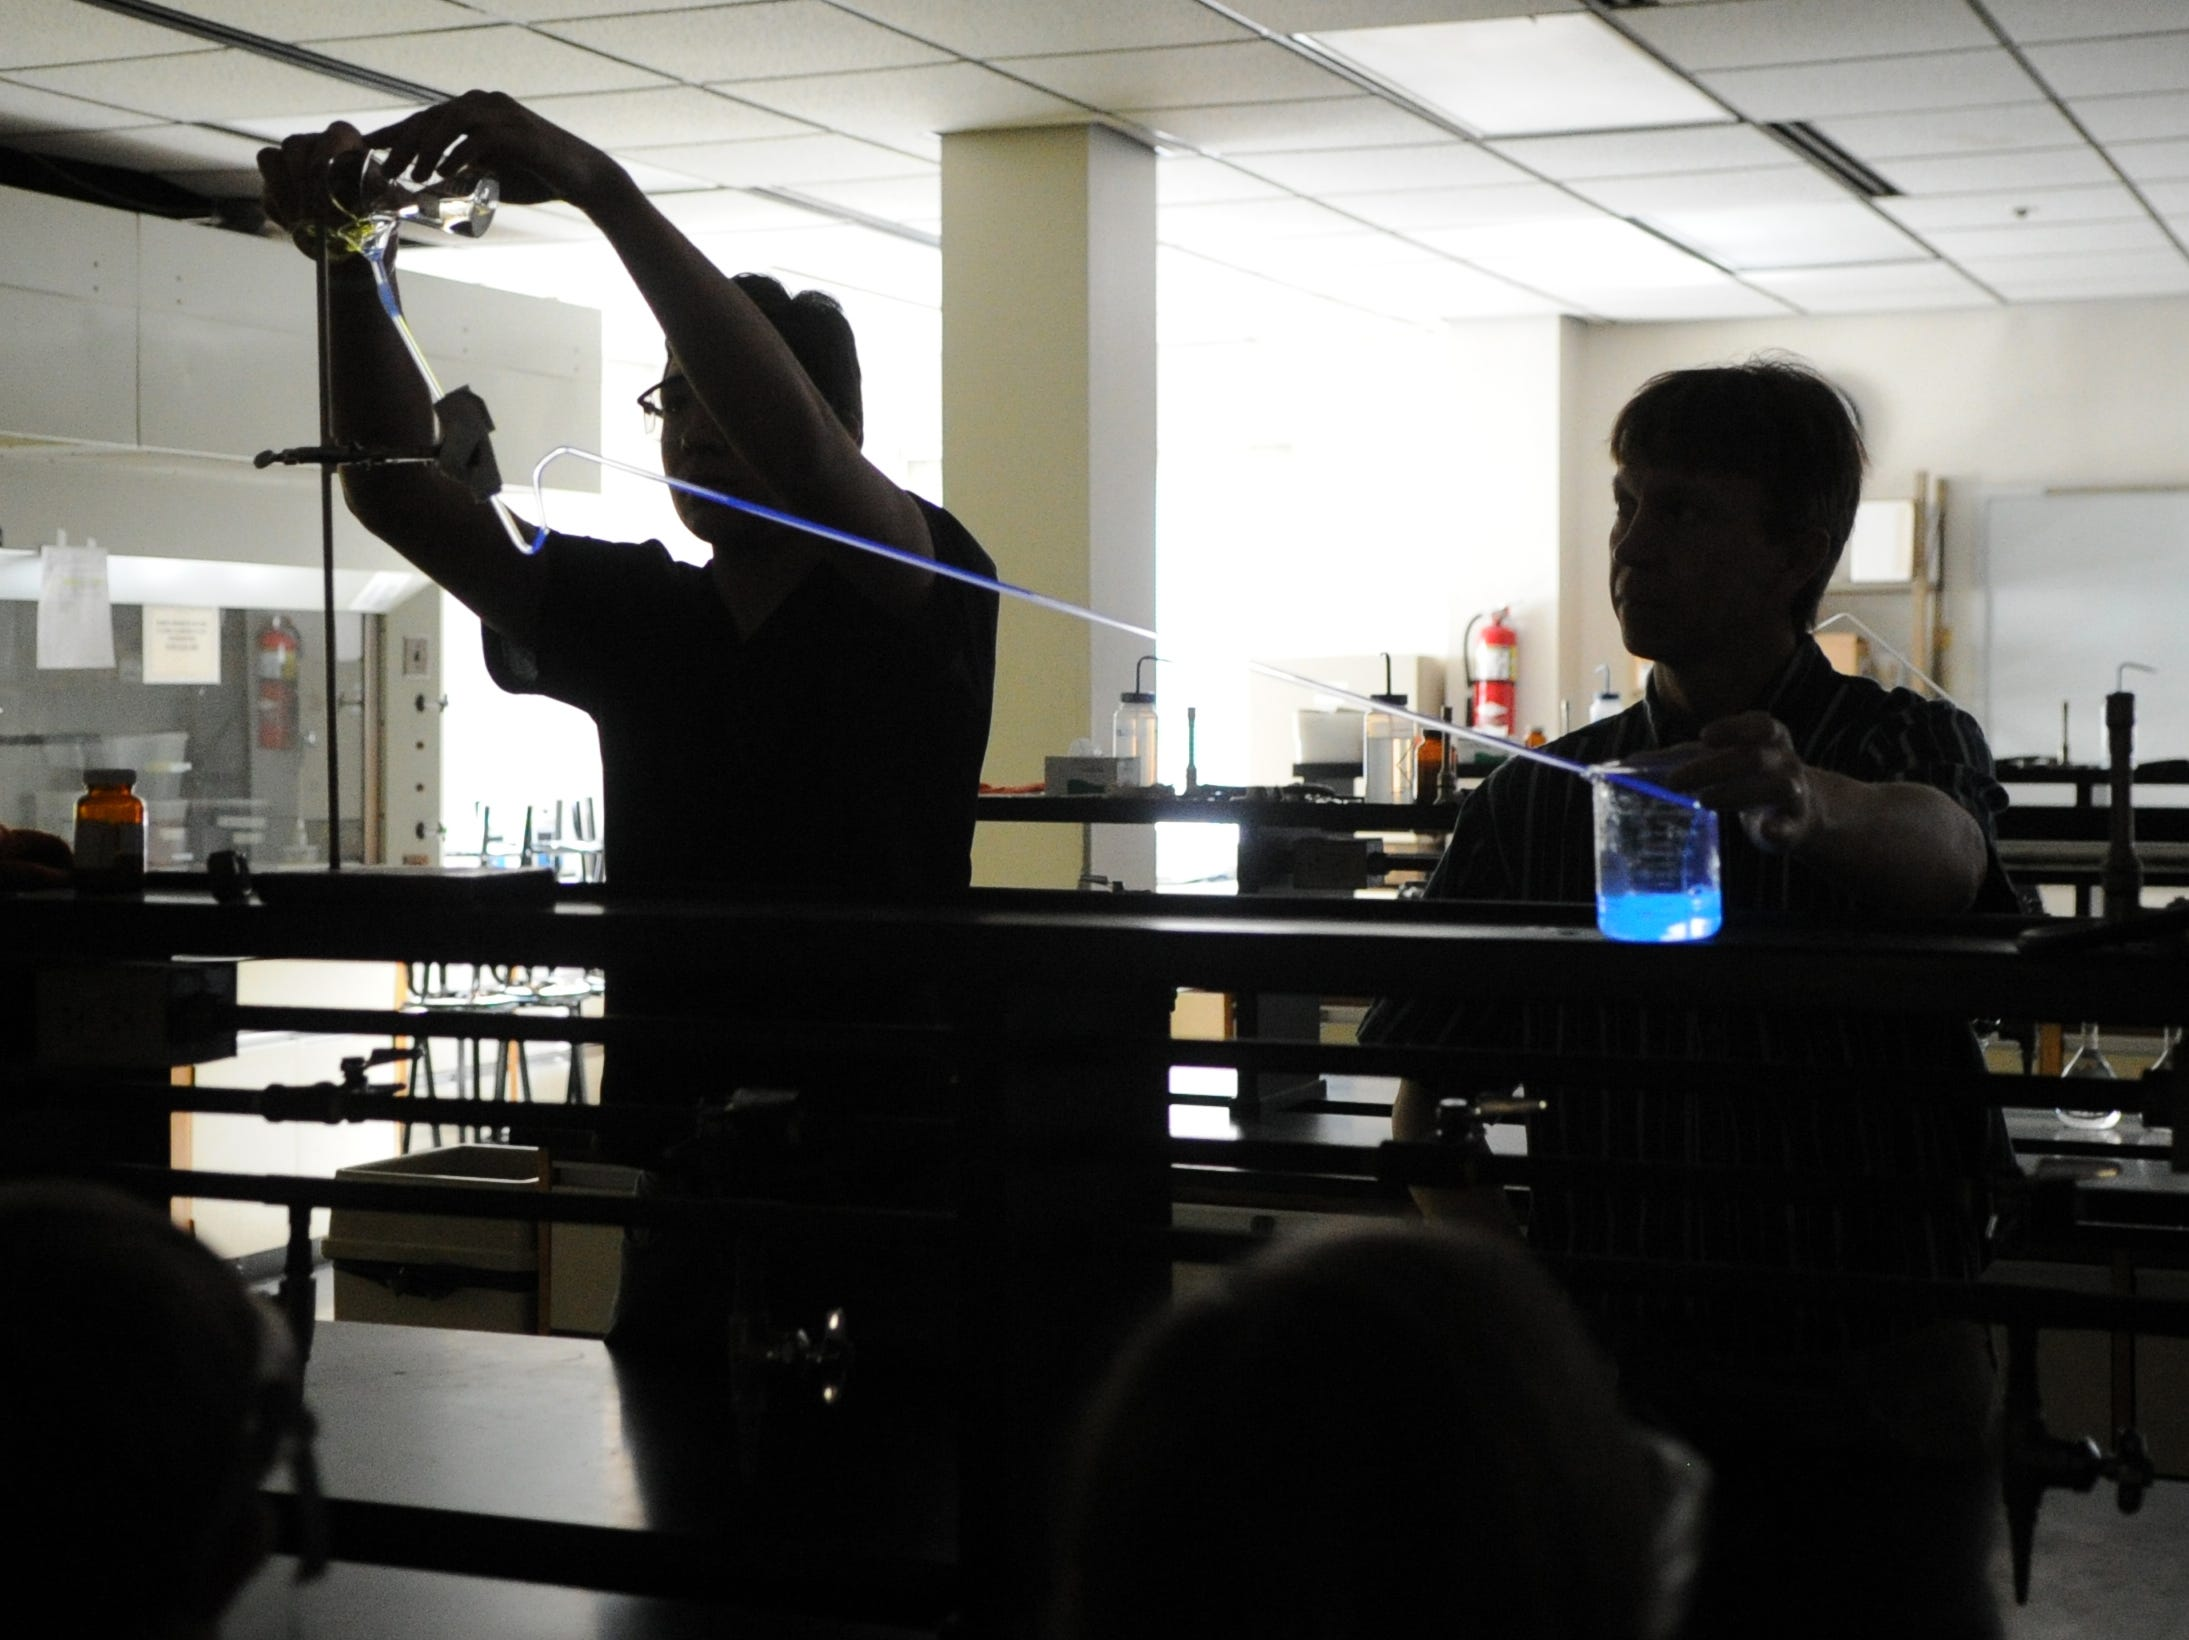 Matthew Donahue, left, and Dr. Terry Burns, right, perform an experiment that simulates the chemical reaction that occurs in lightning bugs during the Young Inventors Fair at Pellissippi State Community College Saturday, March 3, 2012.  Six students participated in the event which was hosted by Dr. Burns and Lee Buckner, president of the college's science club.  (ADAM BRIMER/NEWS SENTINEL)